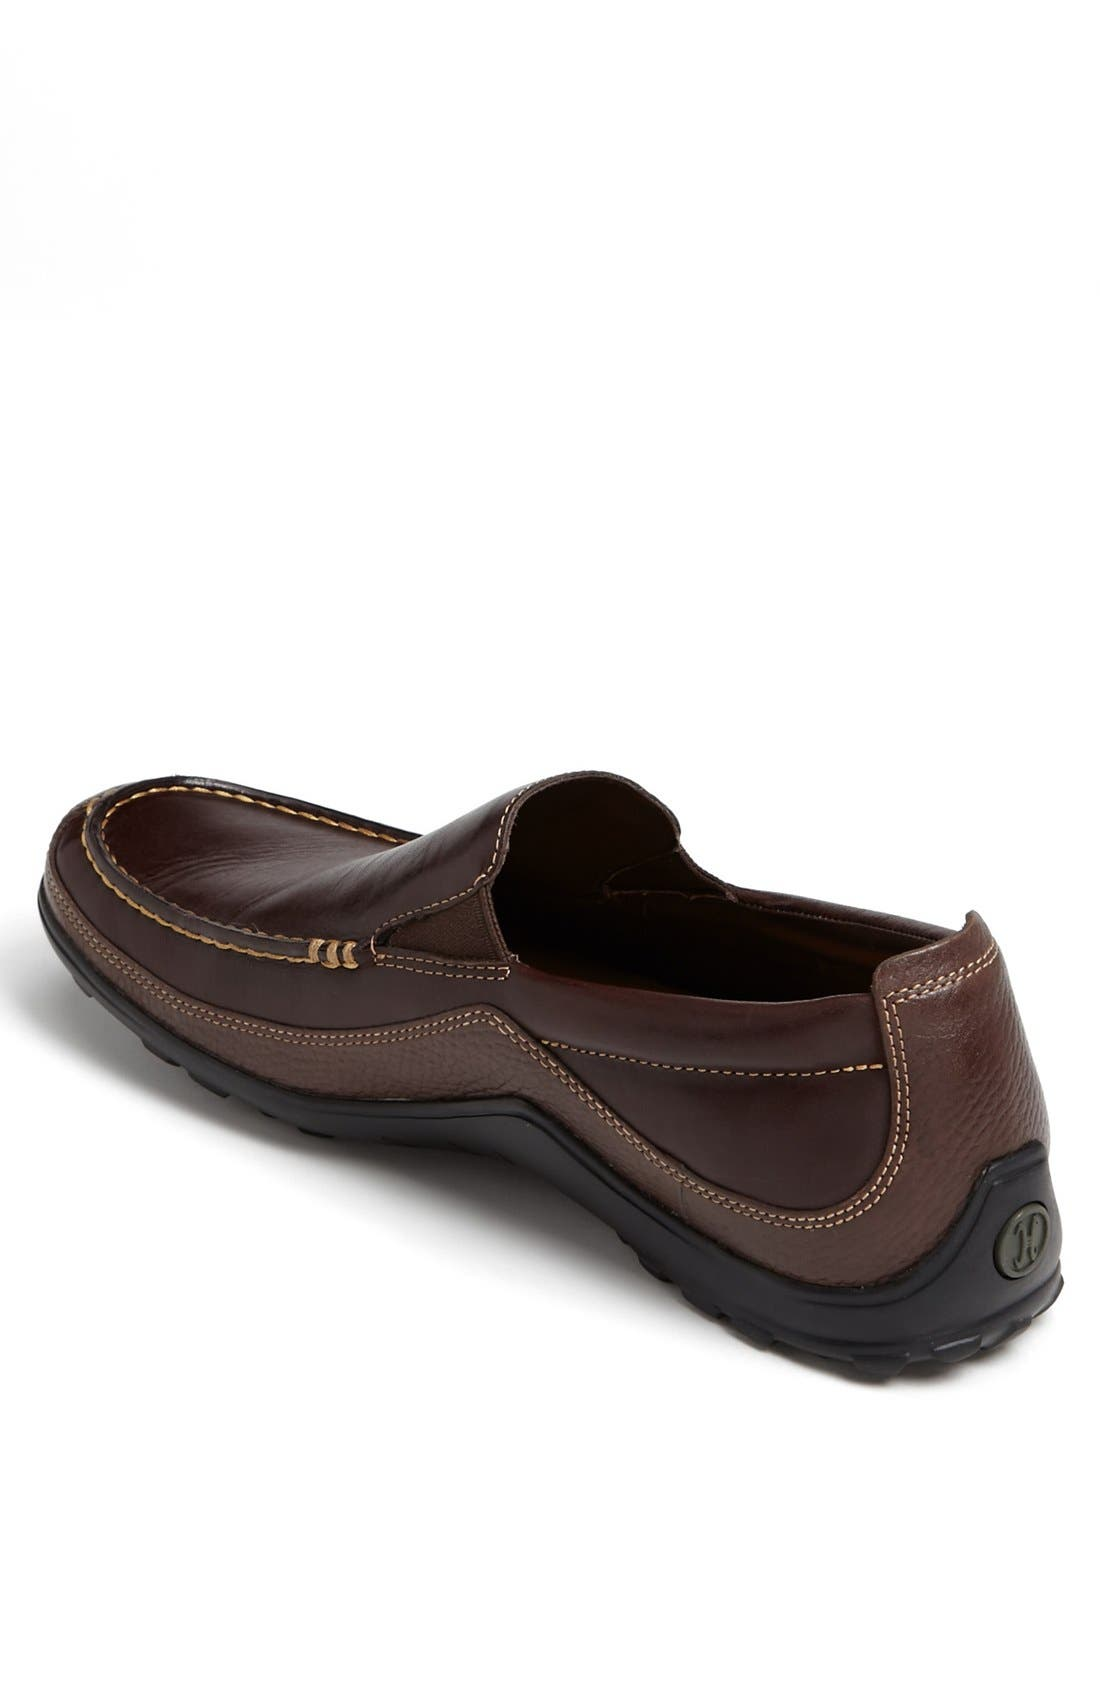 Alternate Image 2  - Cole Haan 'Tucker Venetian' Loafer